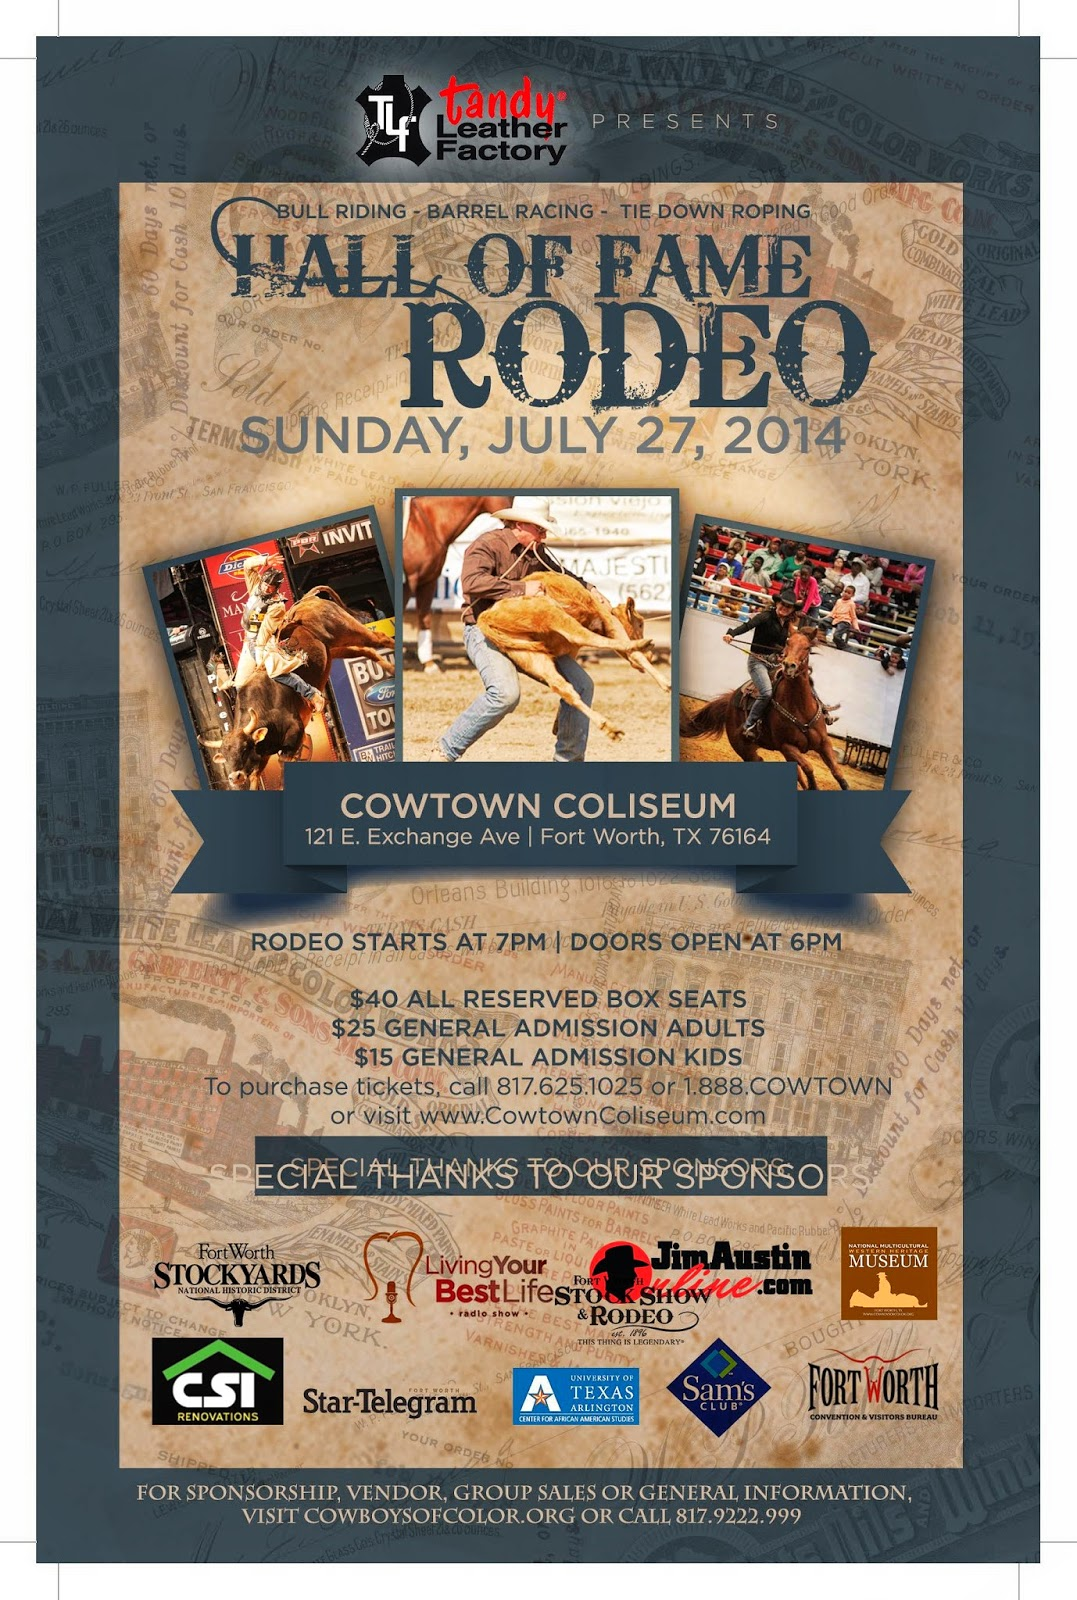 Join Living Your Best Life Radio At The Hall Of Fame Rodeo Genma Speaks